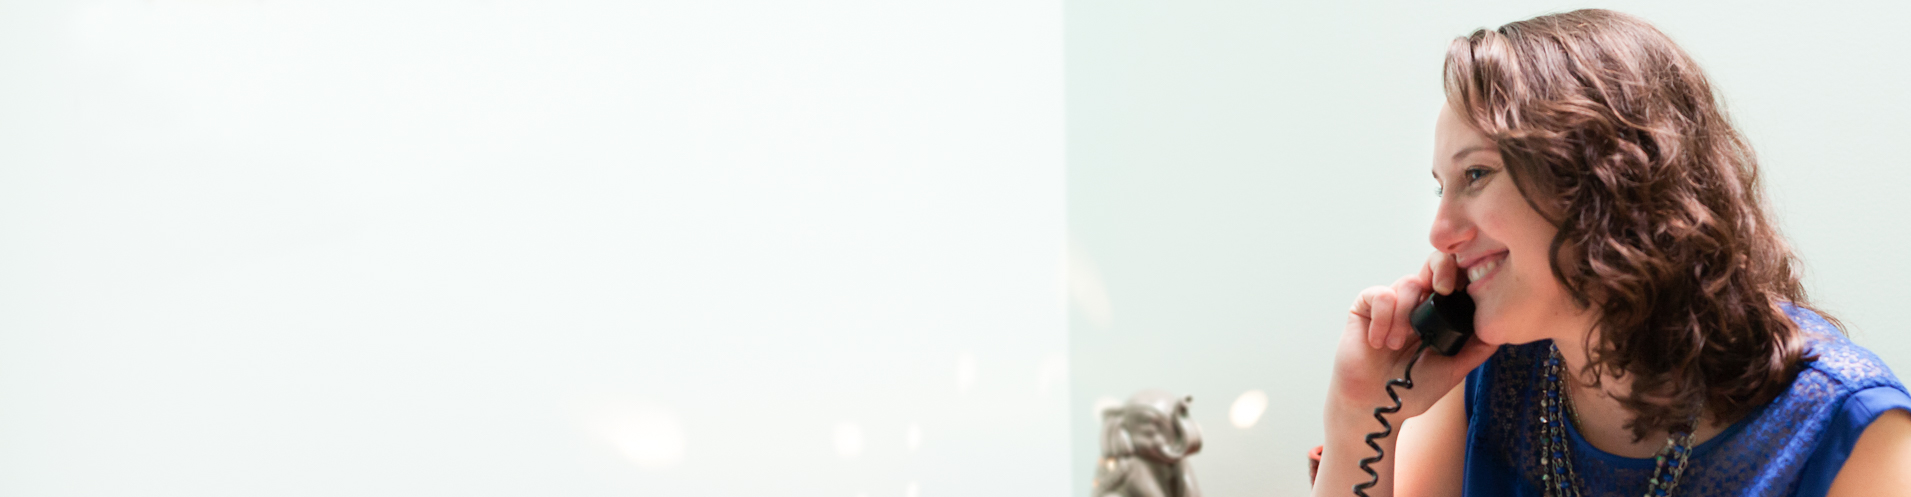 home-banner-3